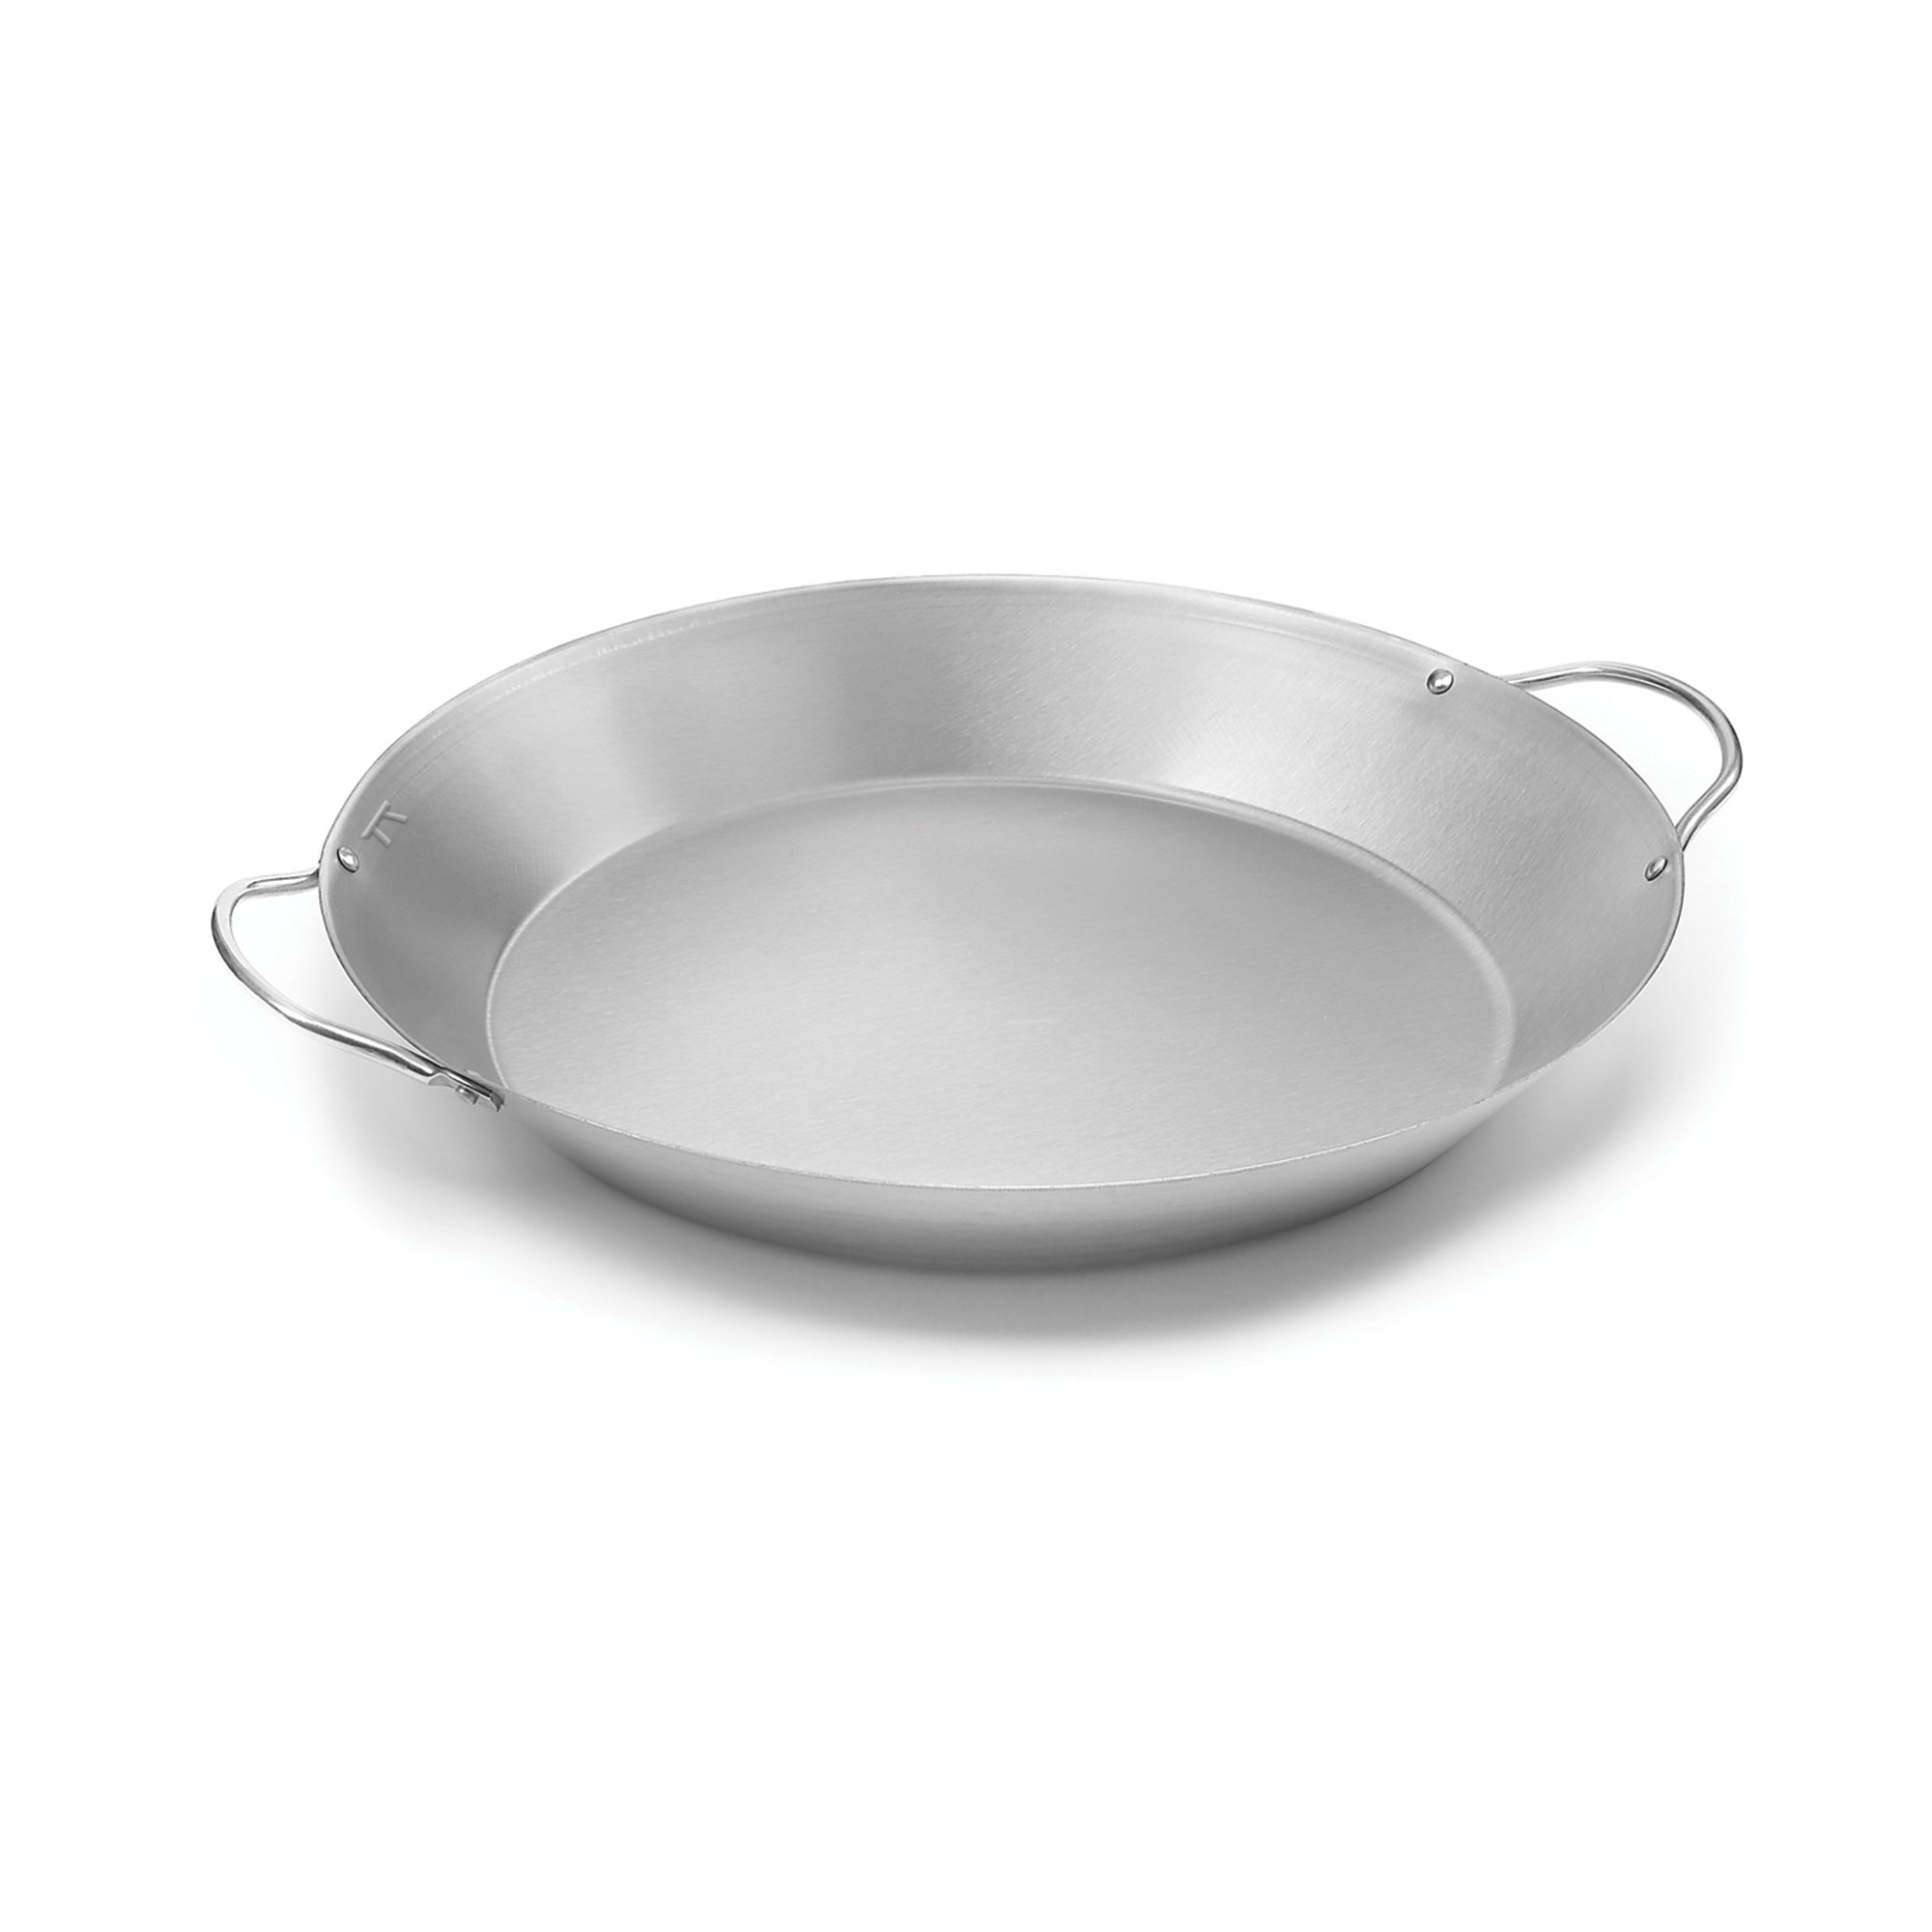 Outset QS68 Paella Pan, Stainless Steel